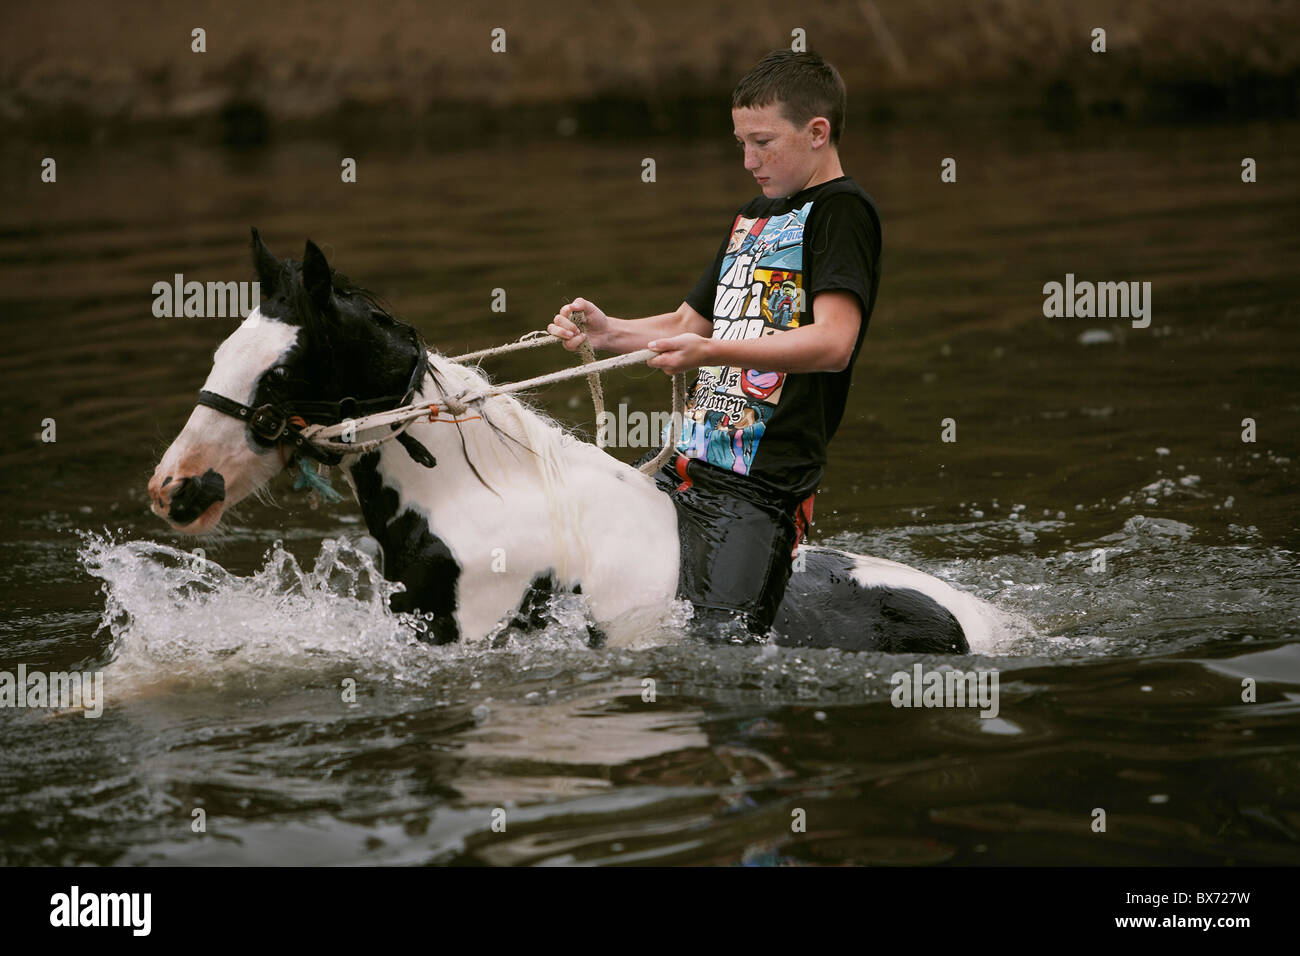 Gypsy traveller riding and washing a horse in the river Eden during the Appleby Horse Fair, Appleby-in-Westmorland, - Stock Image